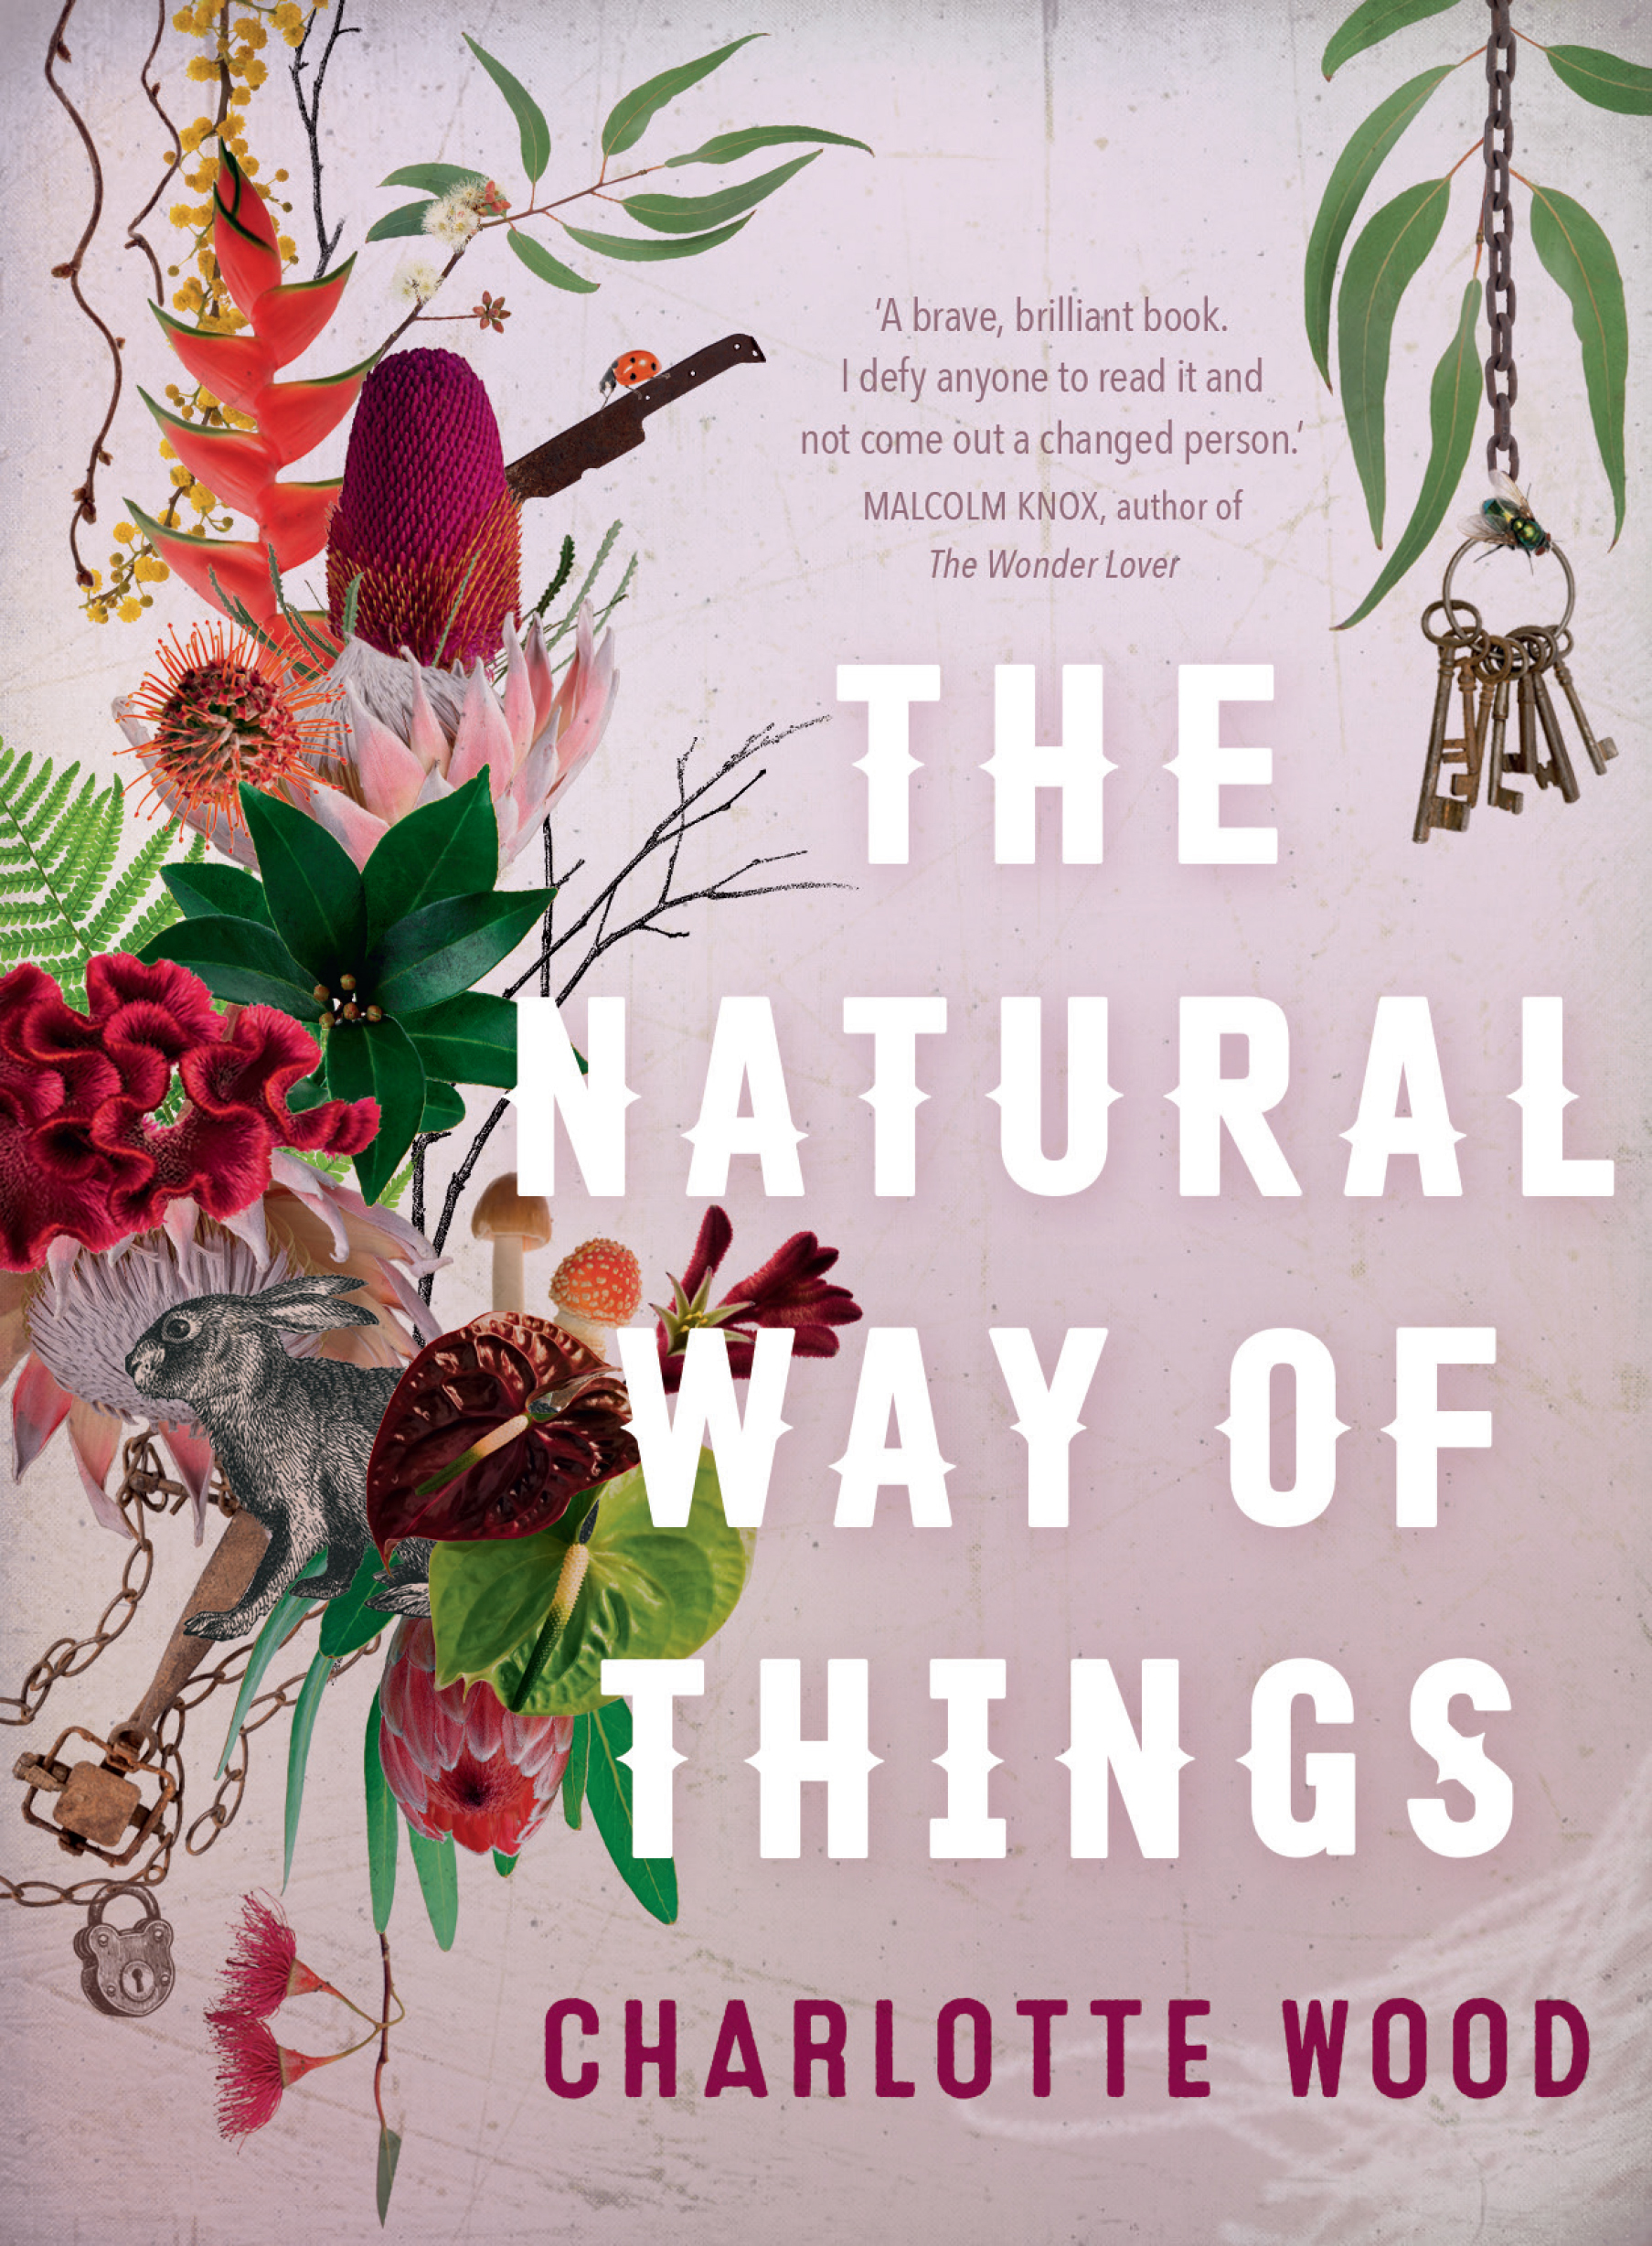 The Natural Way of Things by Charlotte Wood, ISBN: 9781760111236